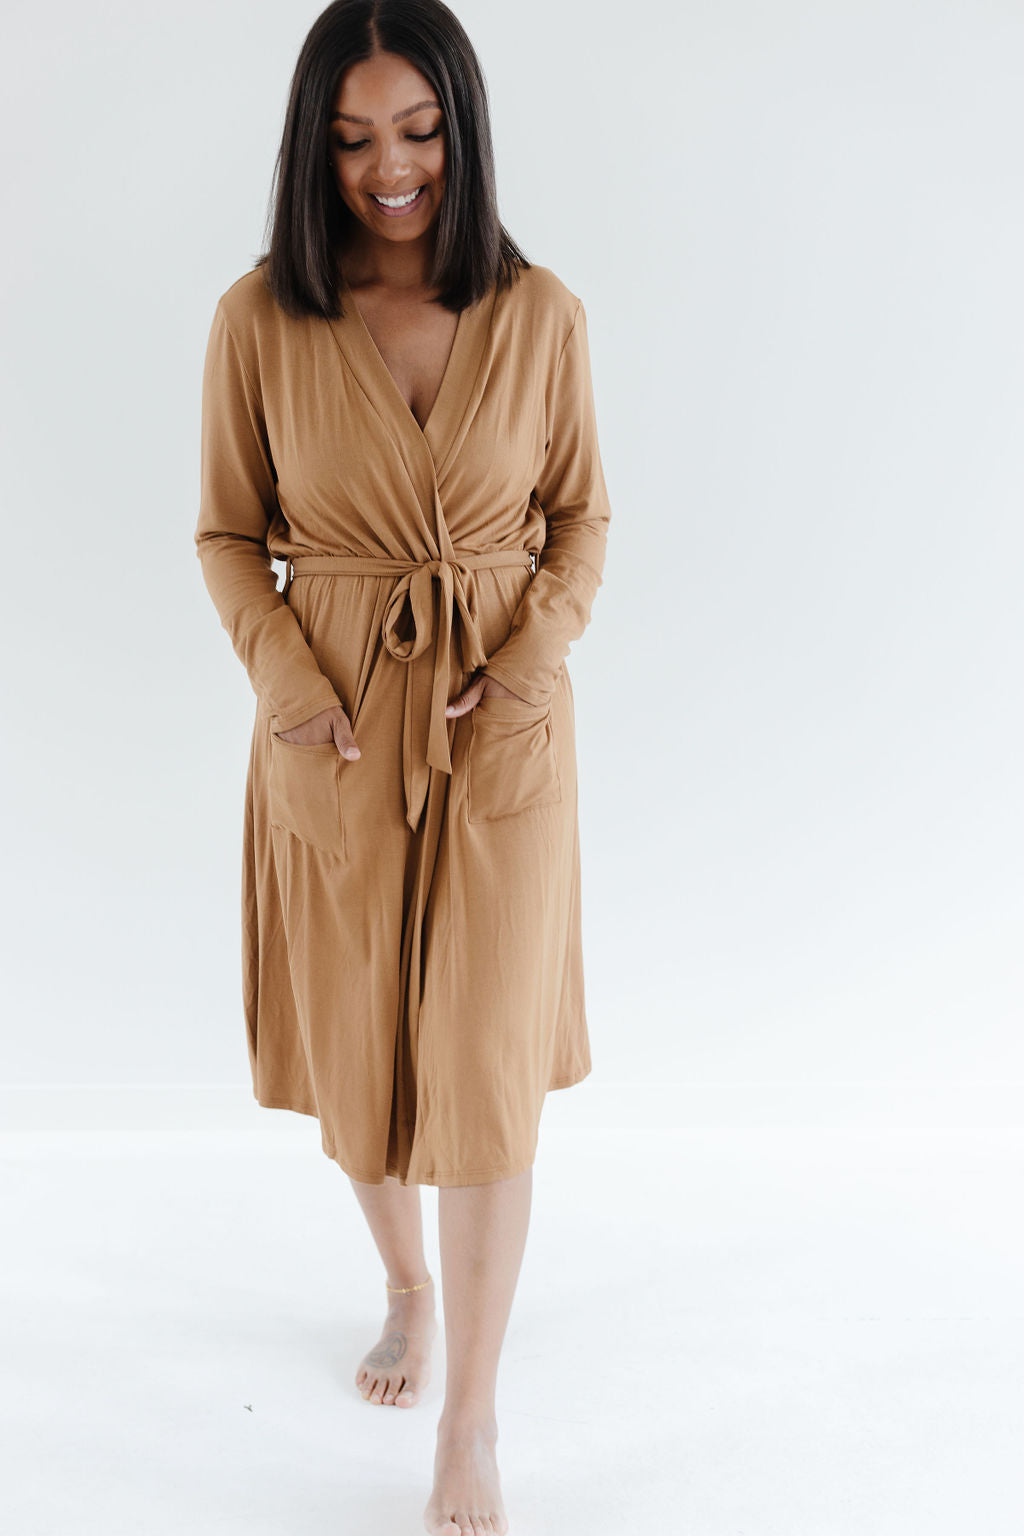 Robe in Camel